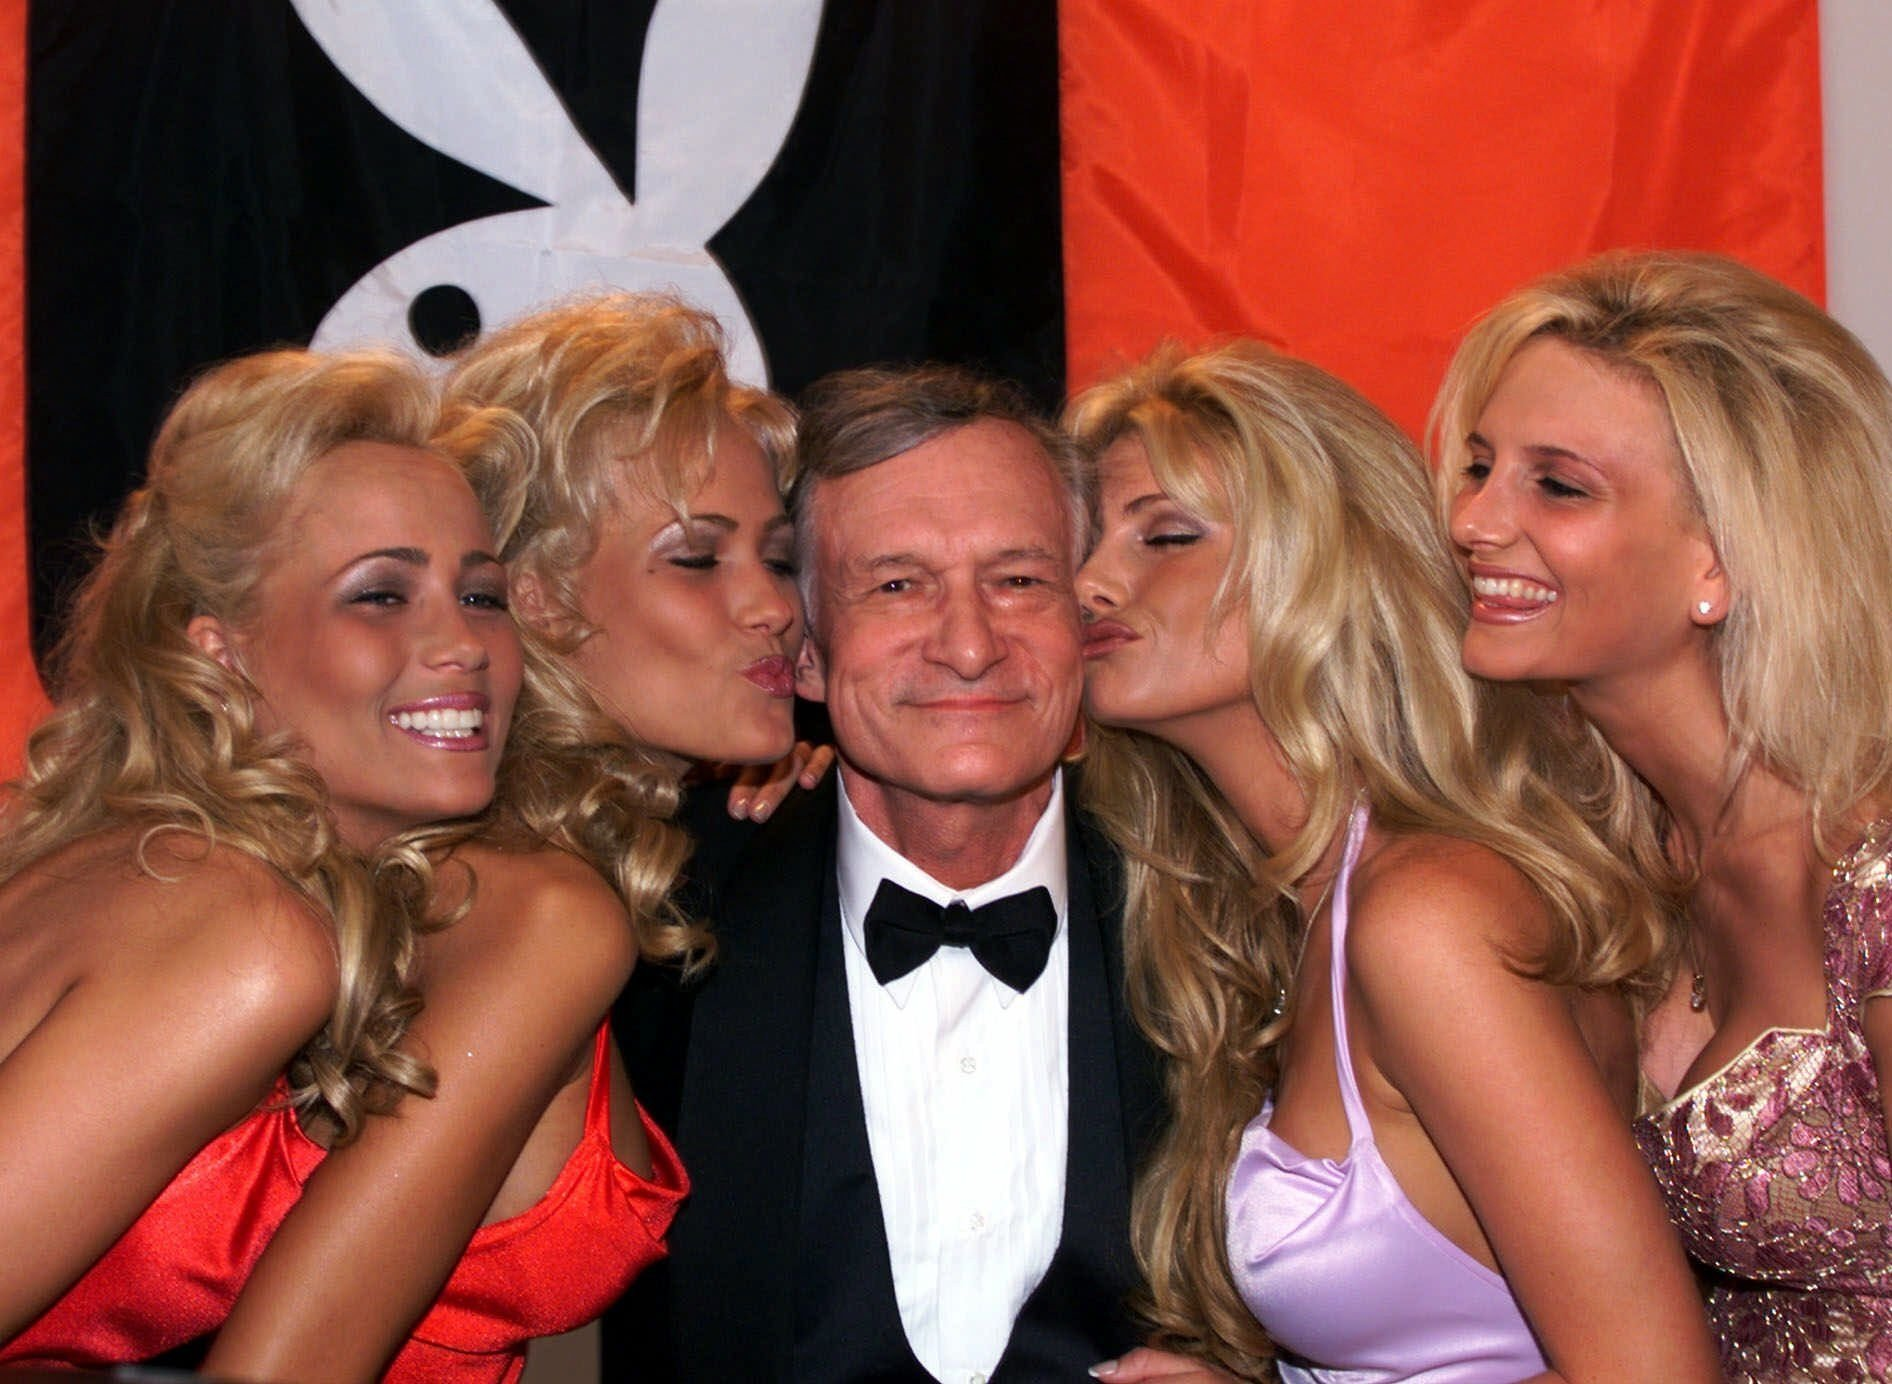 18 Strange Facts Hugh Hefner Wouldn't Want Us To Know